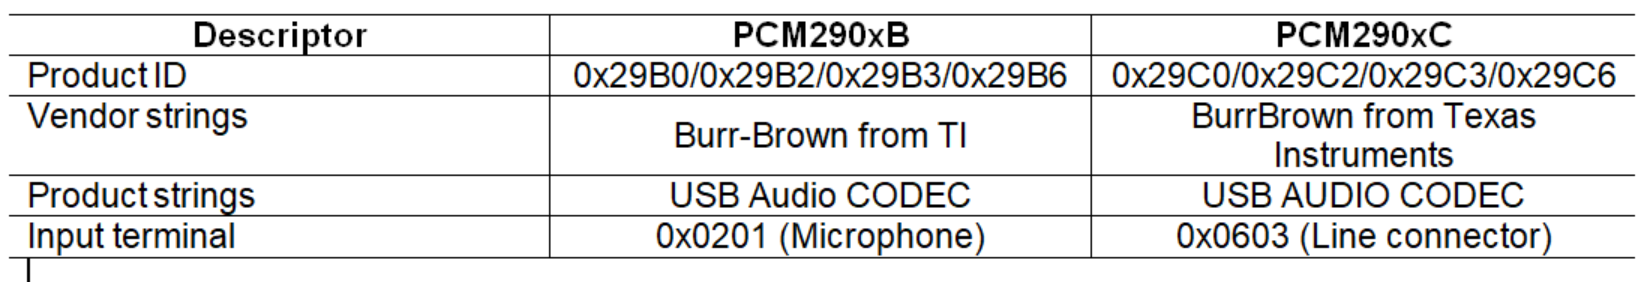 Resolved] [FAQ] PCM2906: Differences between the PCM290xB and